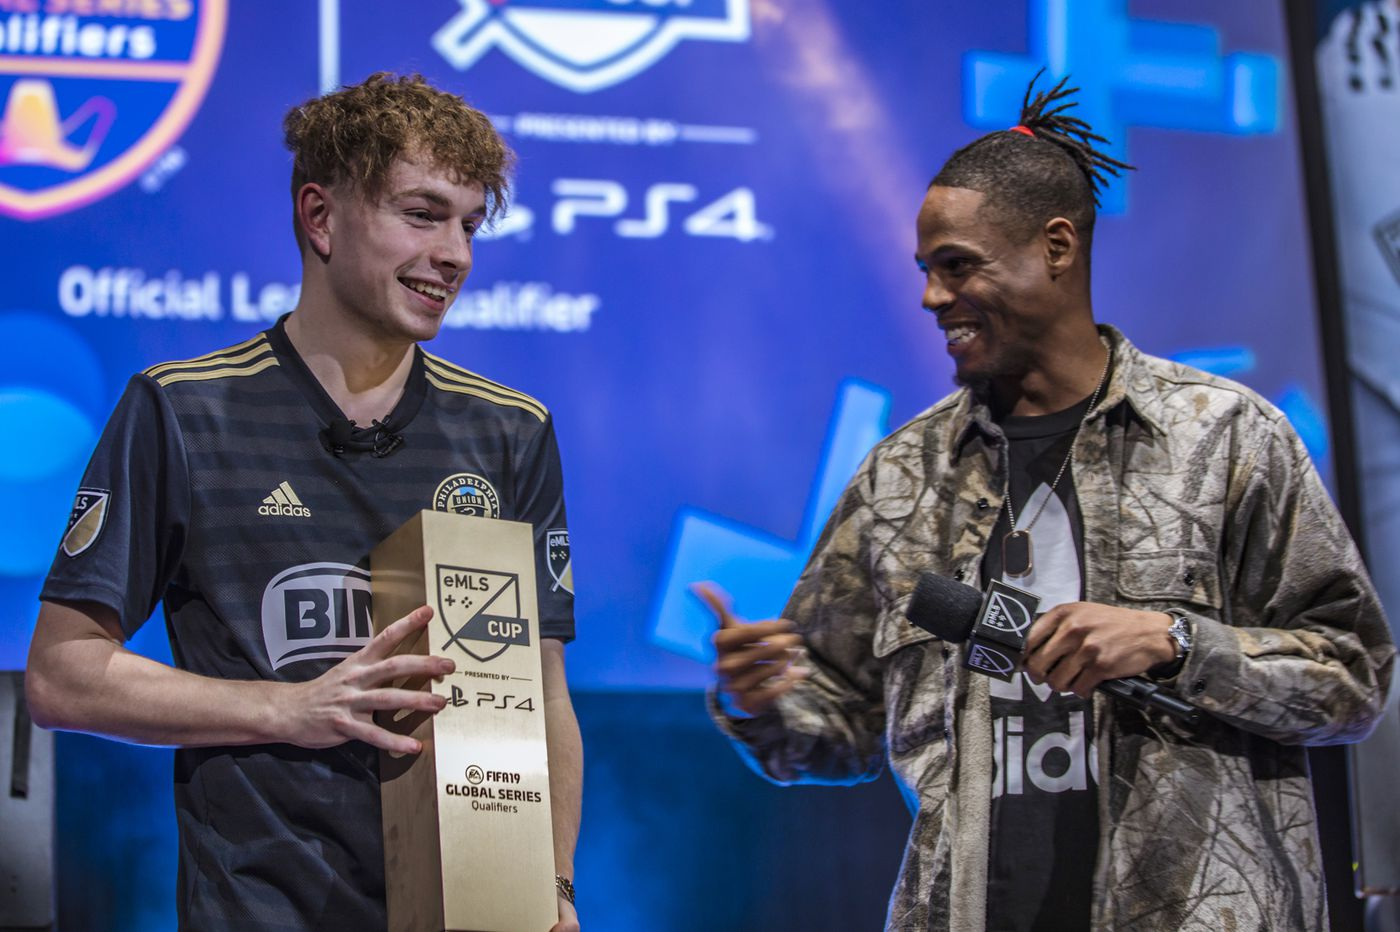 A West Chester high school student is beating pro gamers in FIFA, playing for the Union